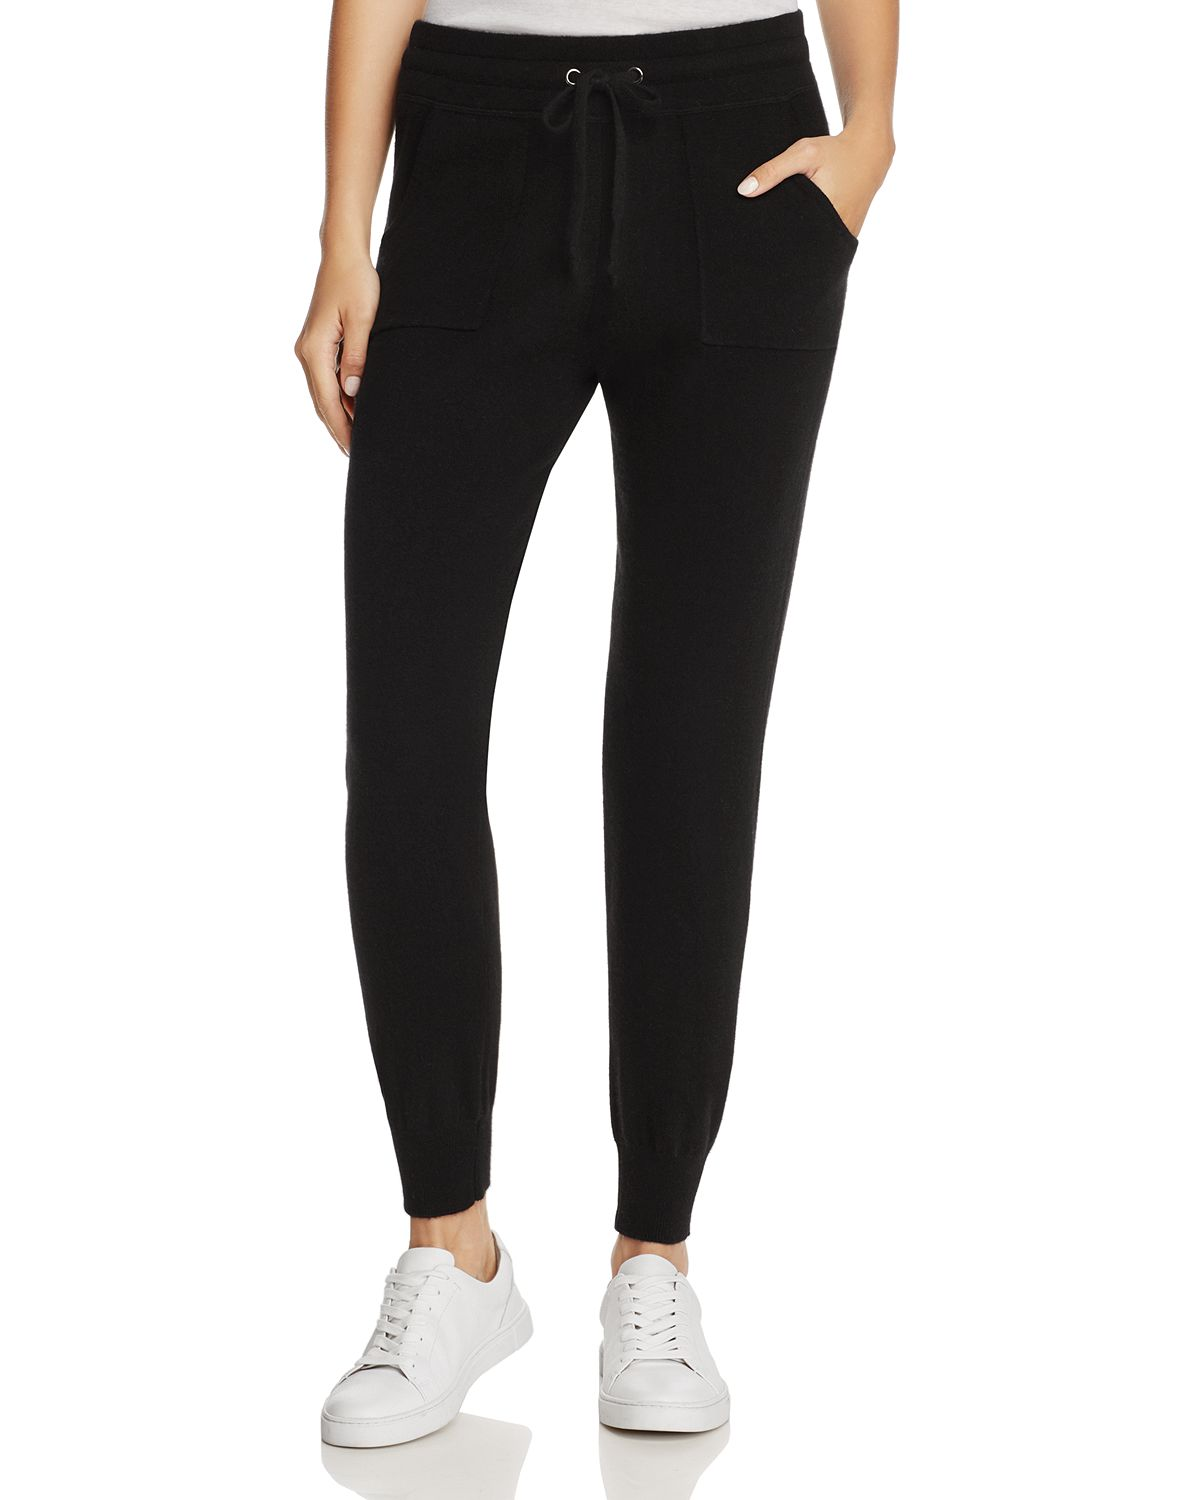 black cashmere jogger pants bloomingdales friends and family sale